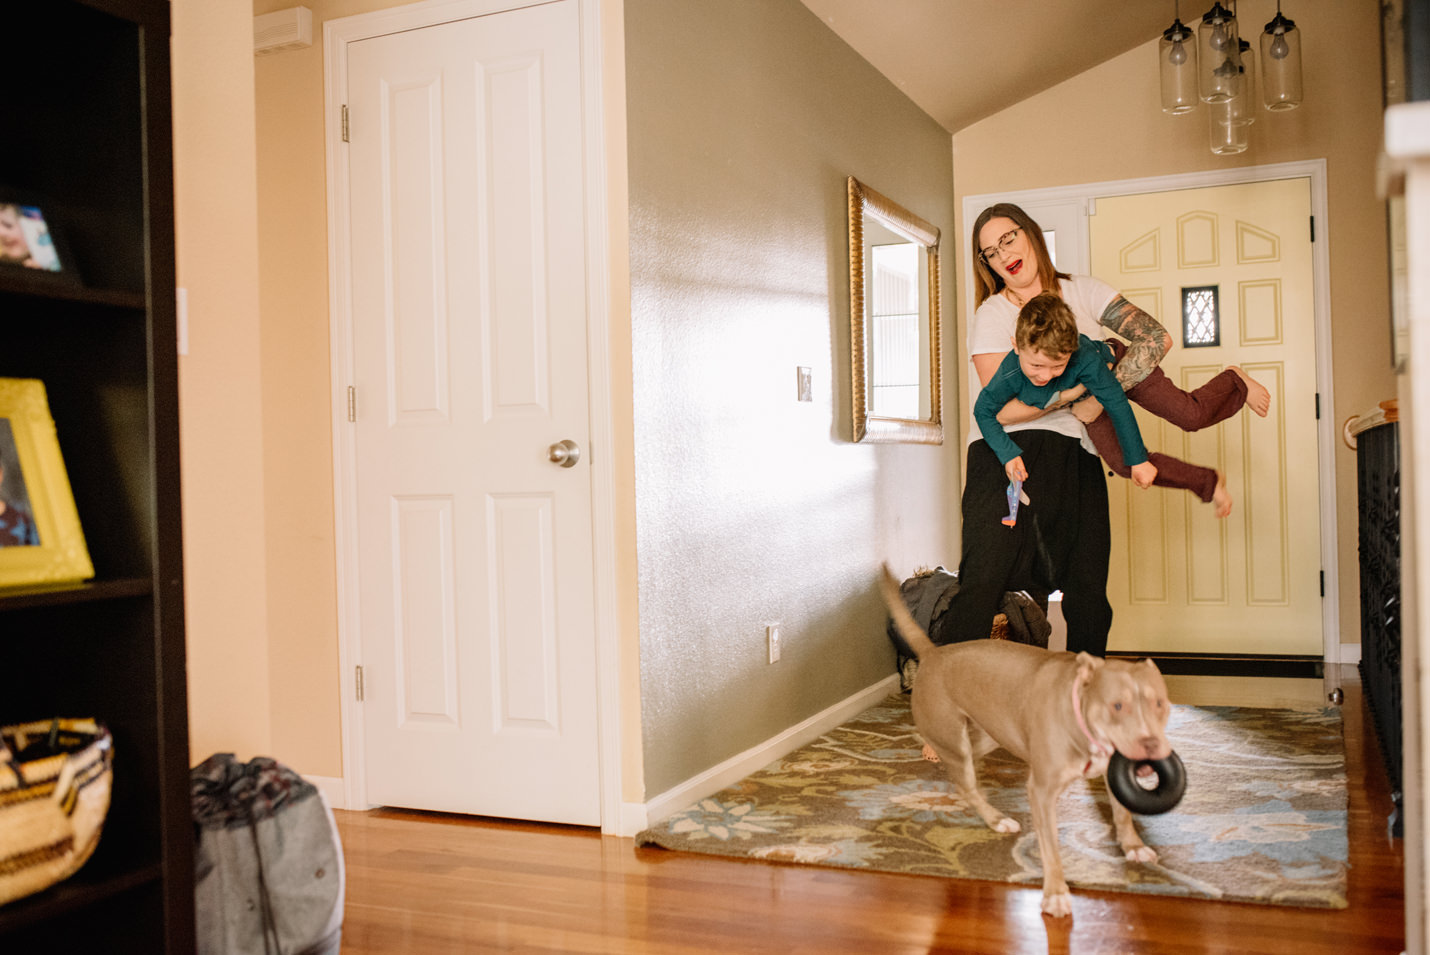 seattle-family-photographer-squillaces-2016_0608.JPG